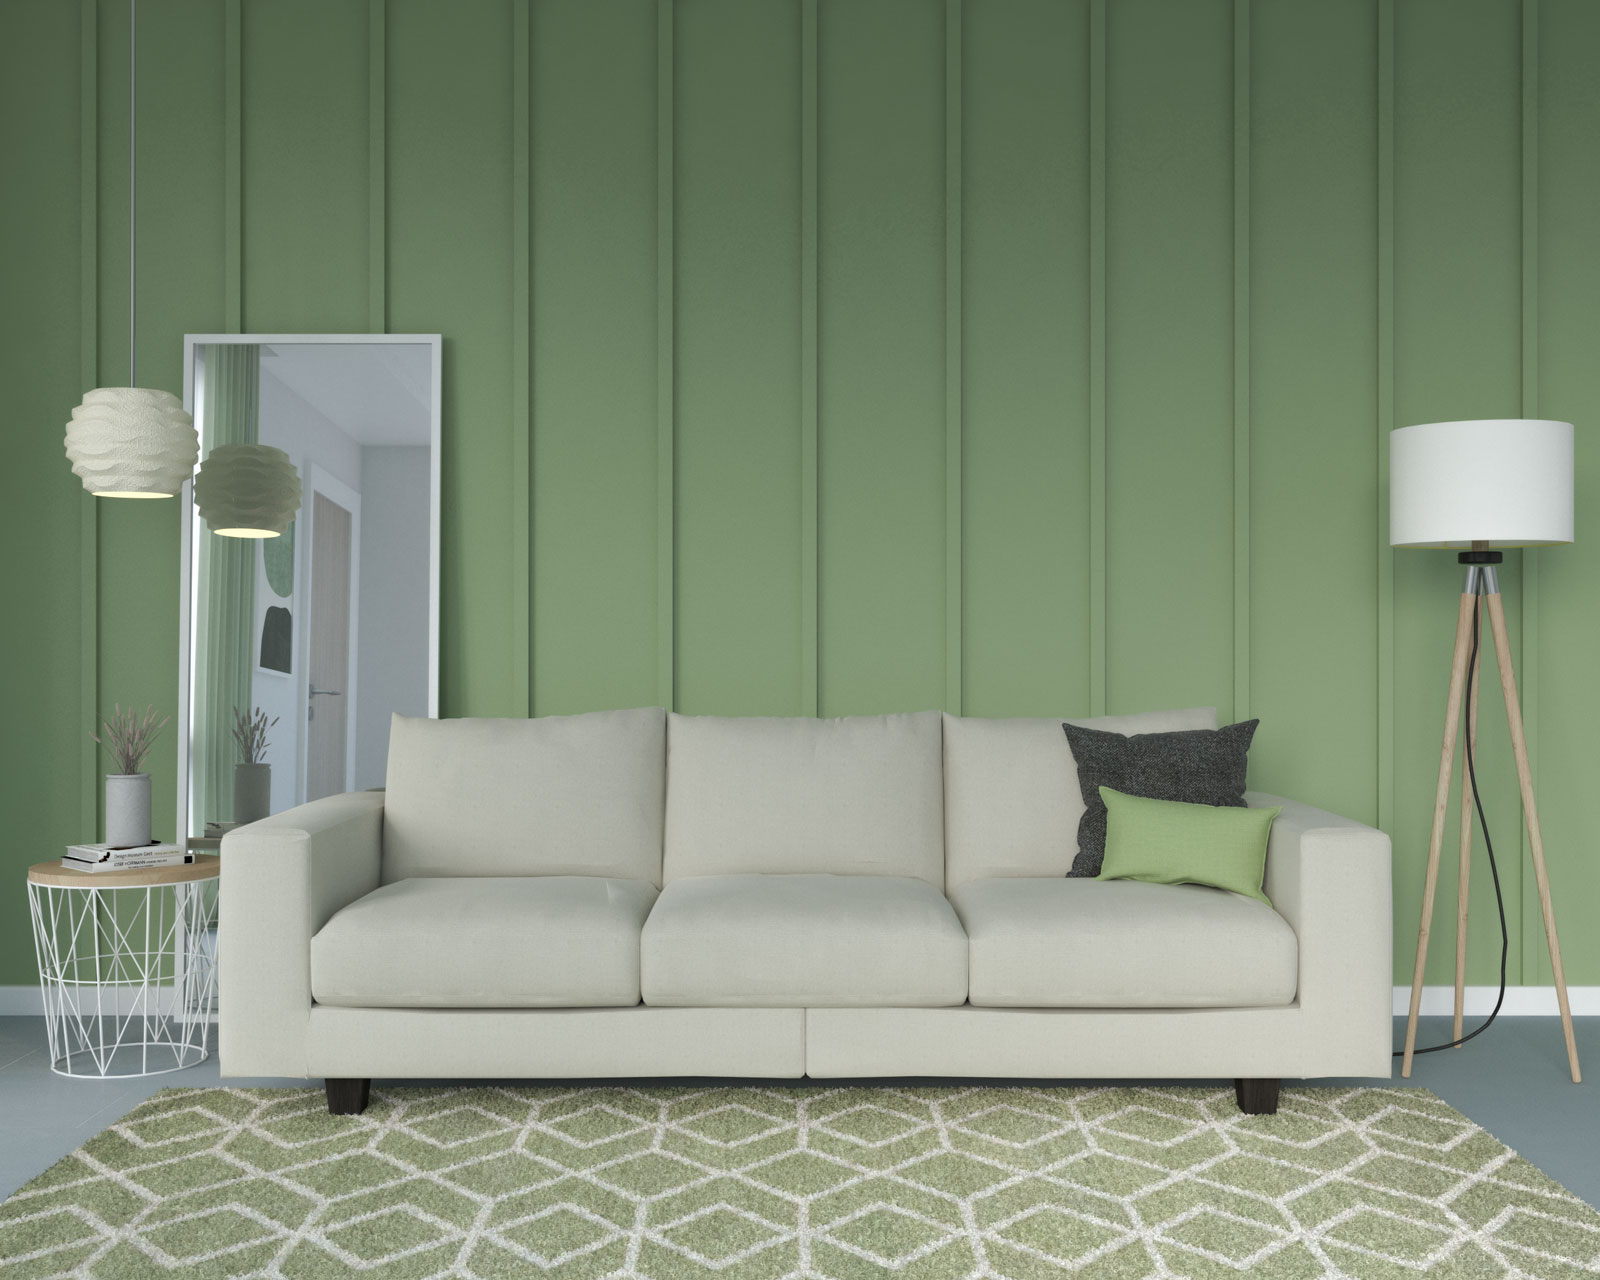 Living room with sage wall and cream couch